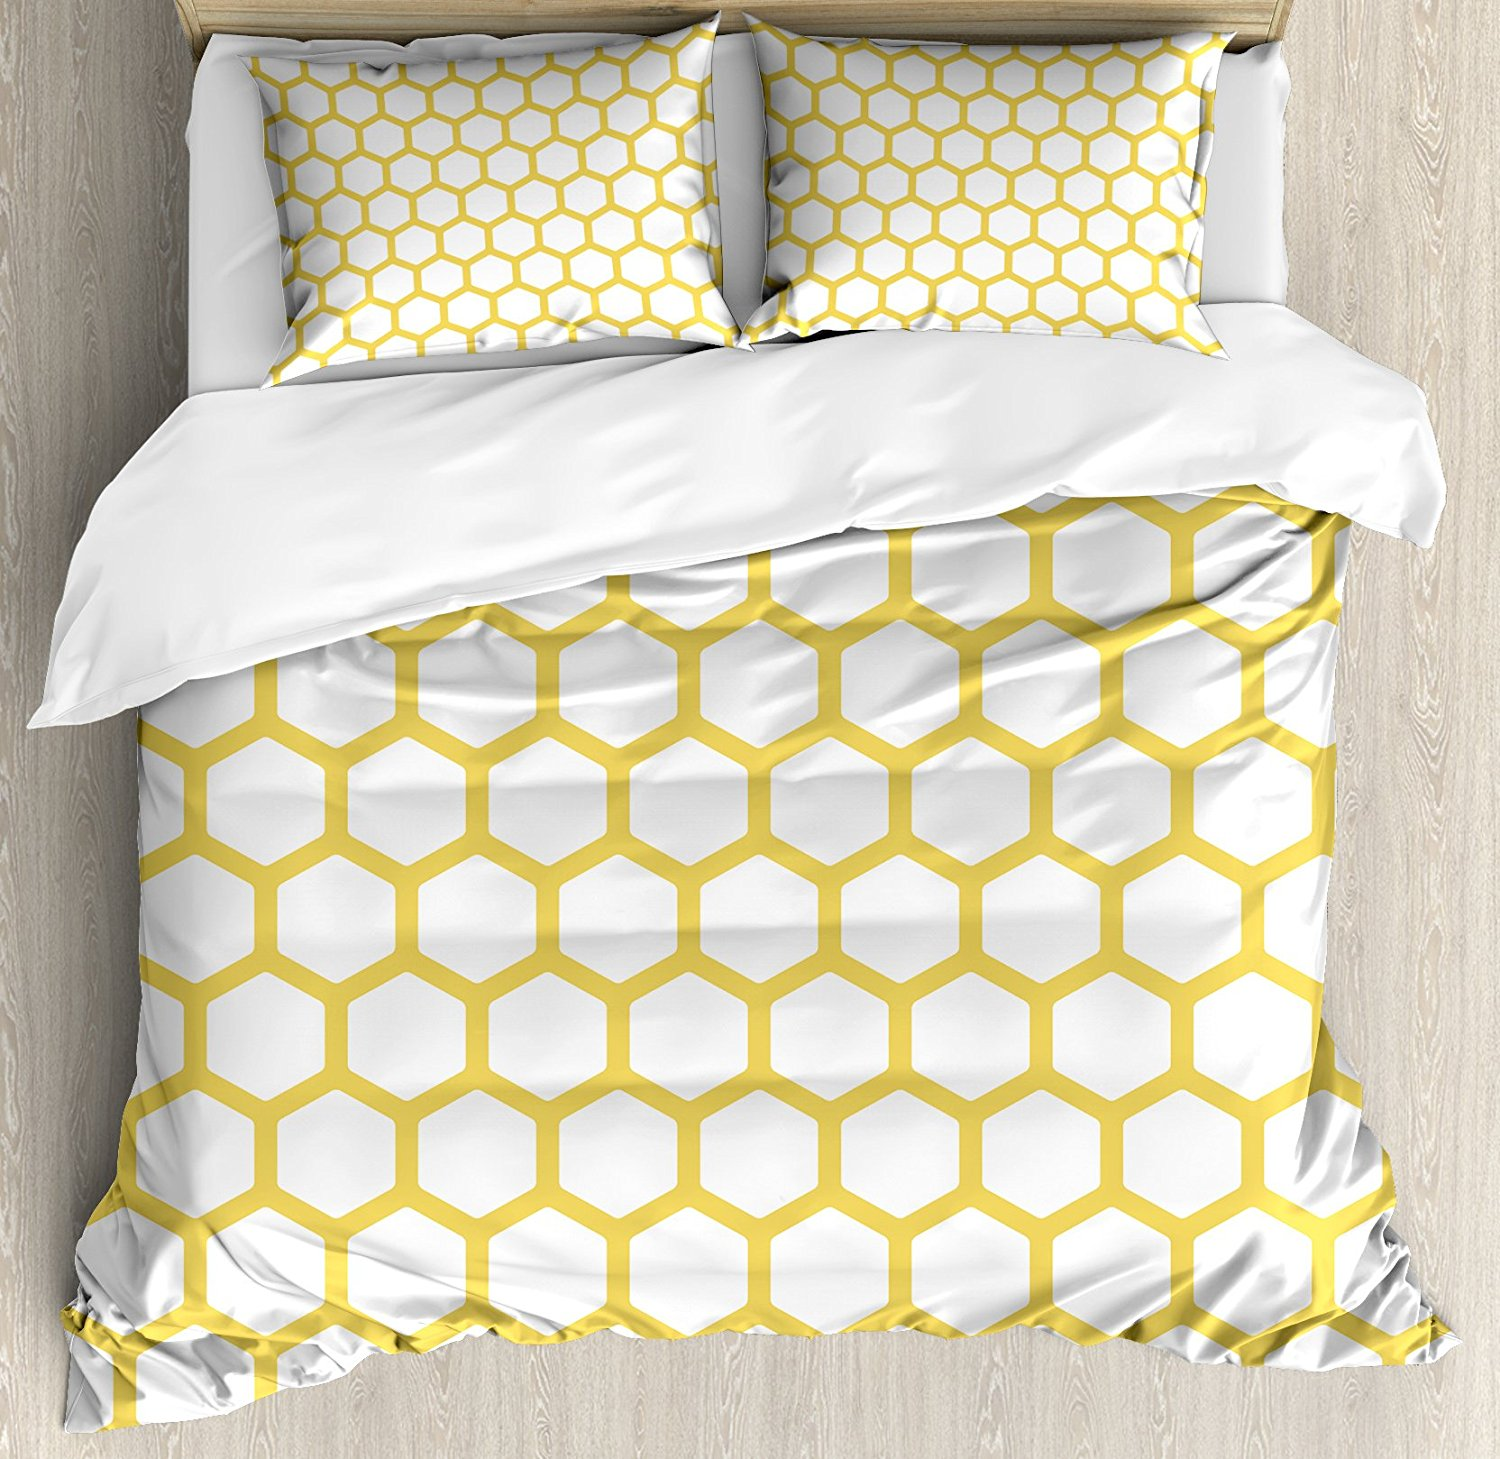 Yellow and White Duvet Cover Set Hexagonal Pattern ...